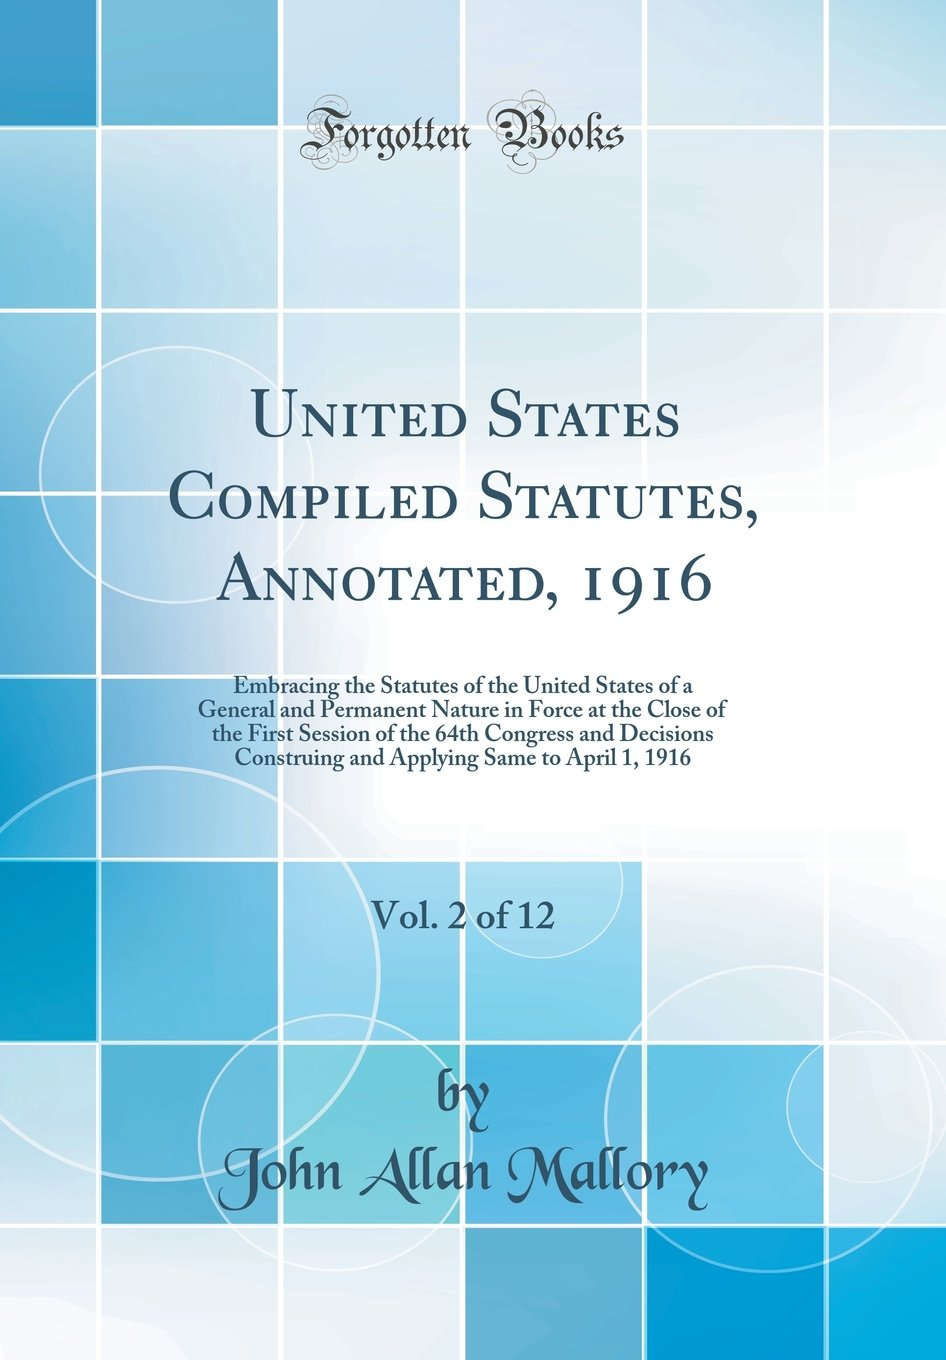 Download United States Compiled Statutes, Annotated, 1916, Vol. 2 of 12: Embracing the Statutes of the United States of a General and Permanent Nature in Force ... Decisions Construing and Applying Same to Apr ebook